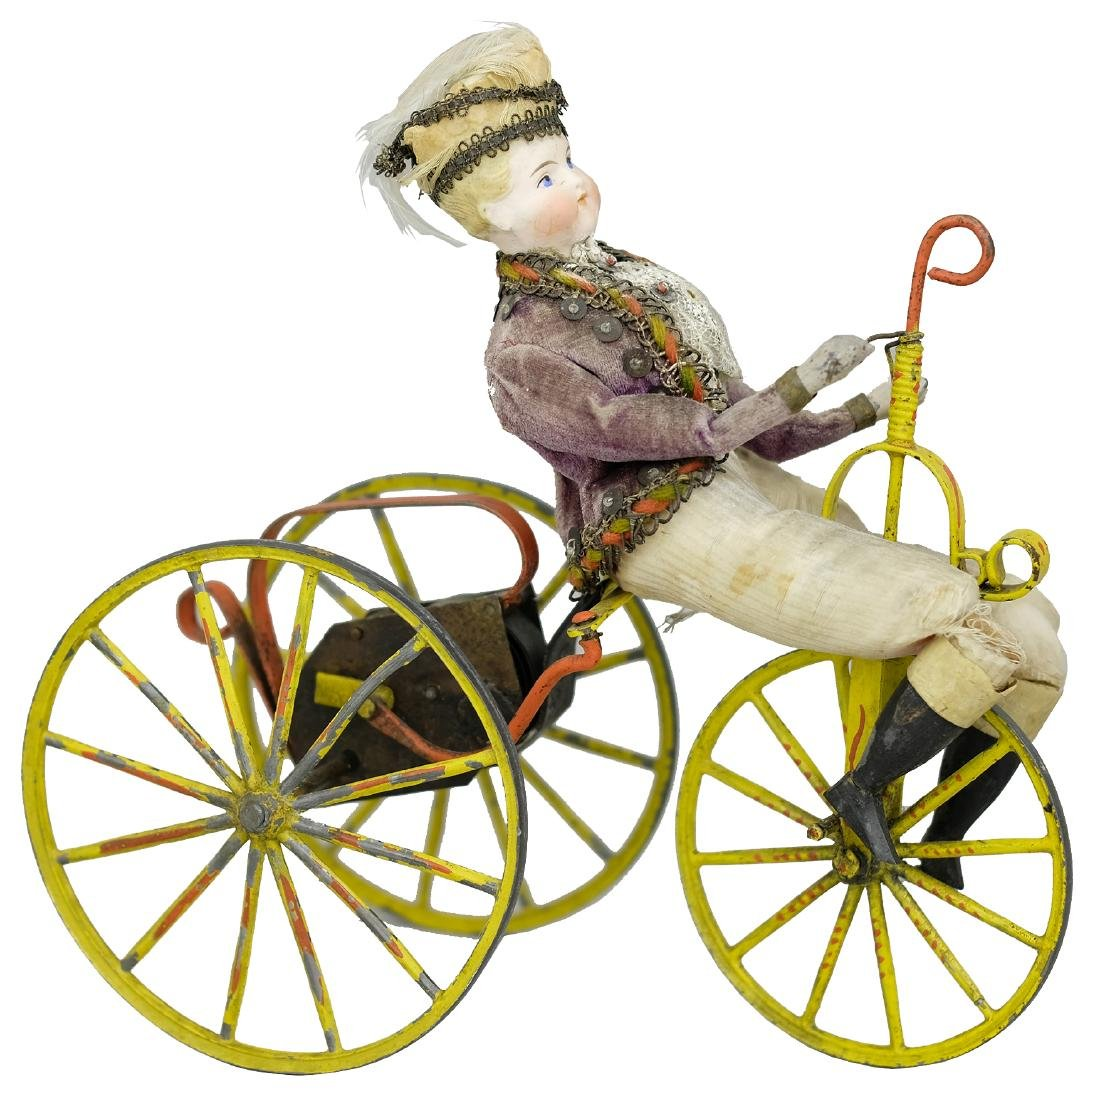 Young Prince Riding an Ornate Tricycle